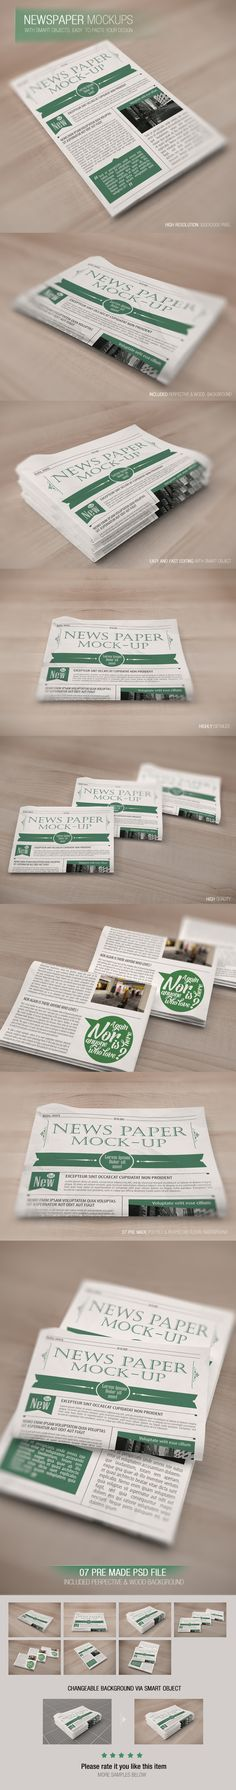 Newspaper mockup by Wutip Team http://on.be.net/1qM4Koq